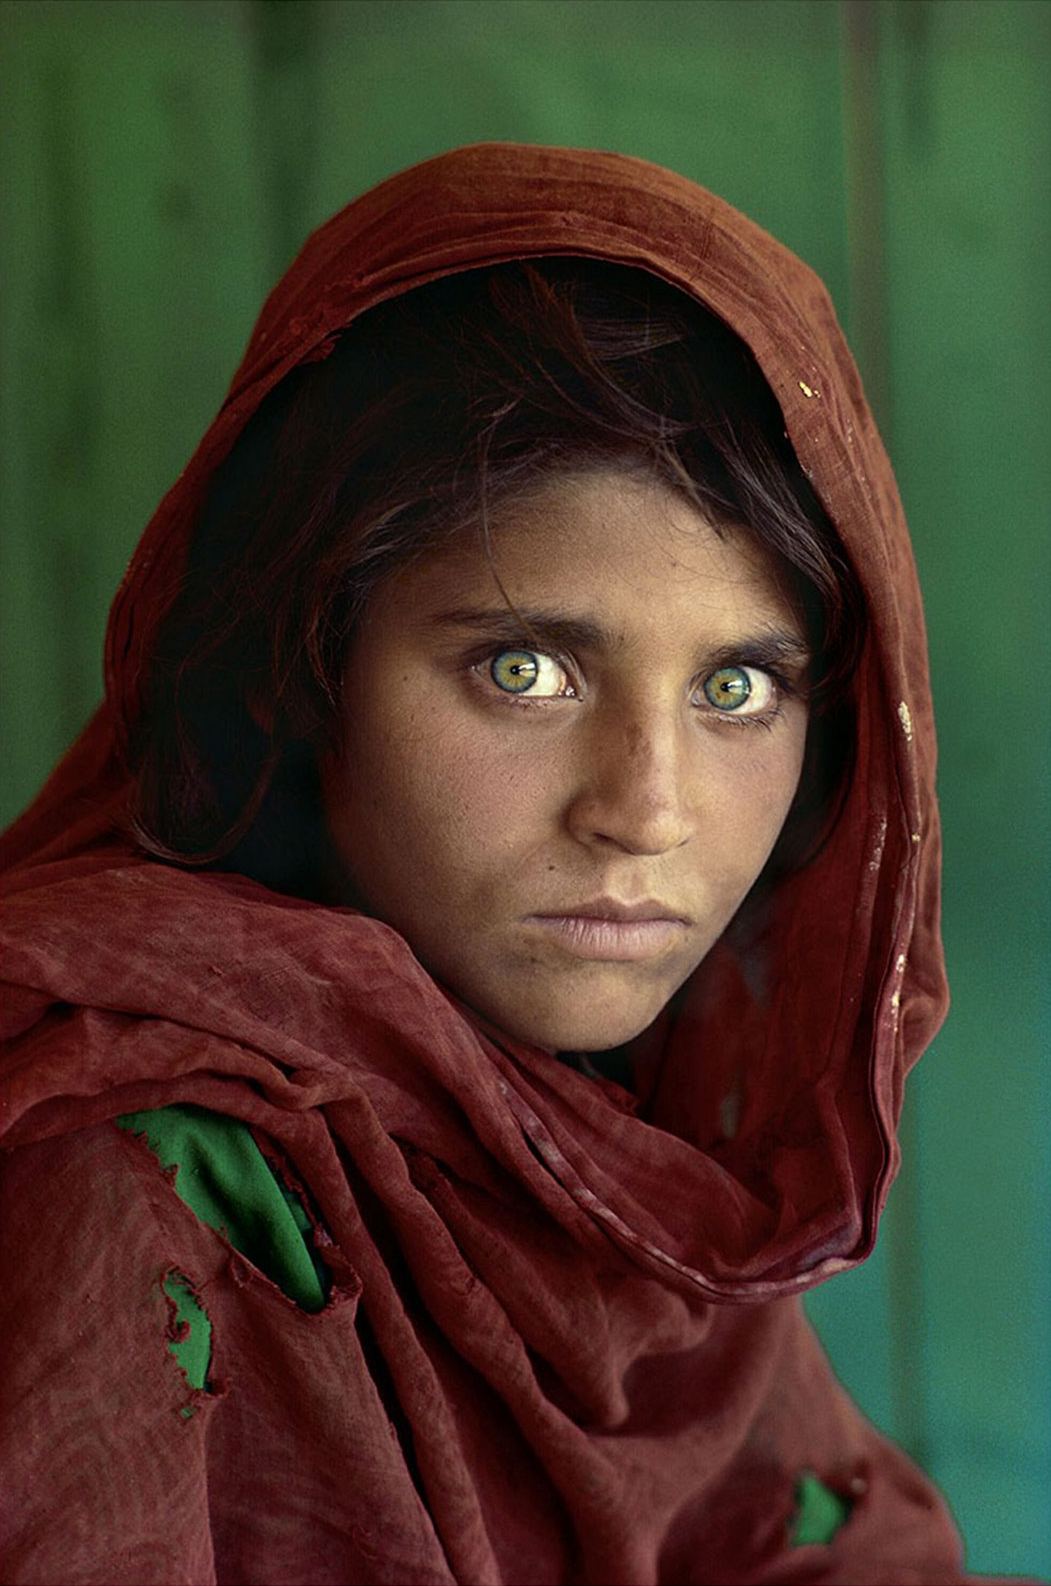 Sharbat Gula's 1984 portrait by Steve McCurry for National Geographic magazine.